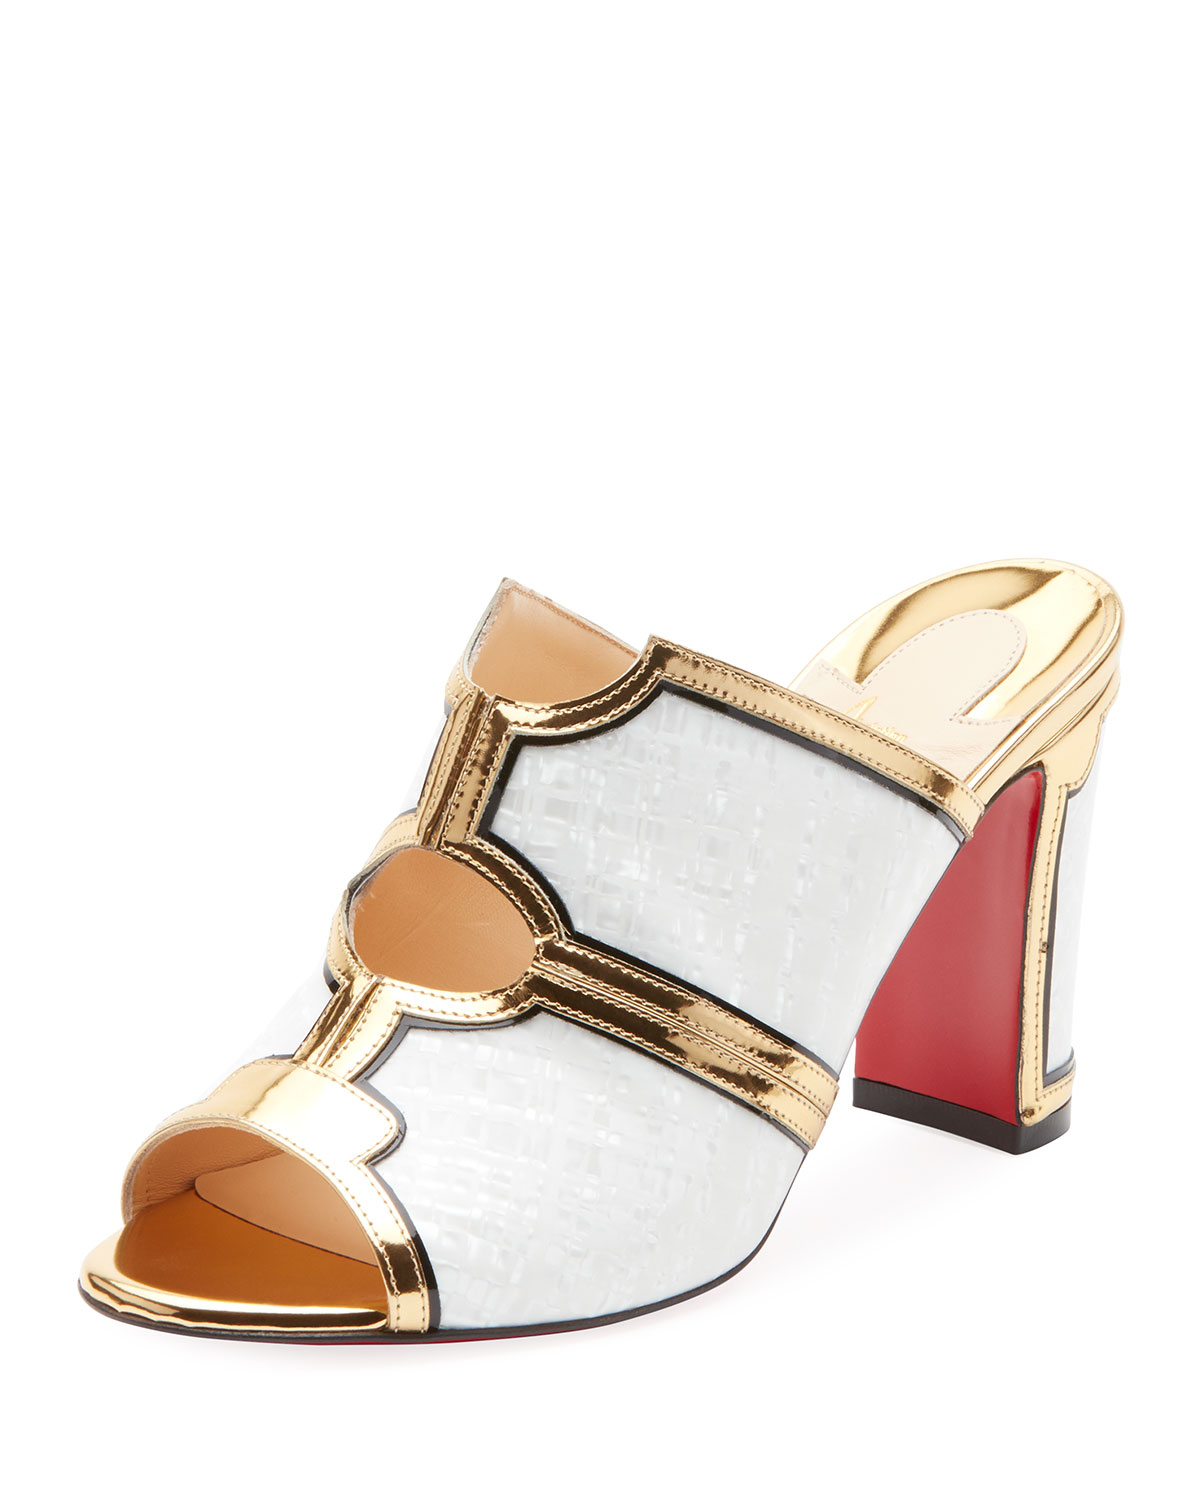 CHRISTIAN LOUBOUTIN INTERIOR TWO-TONE RED SOLE MULE SANDAL